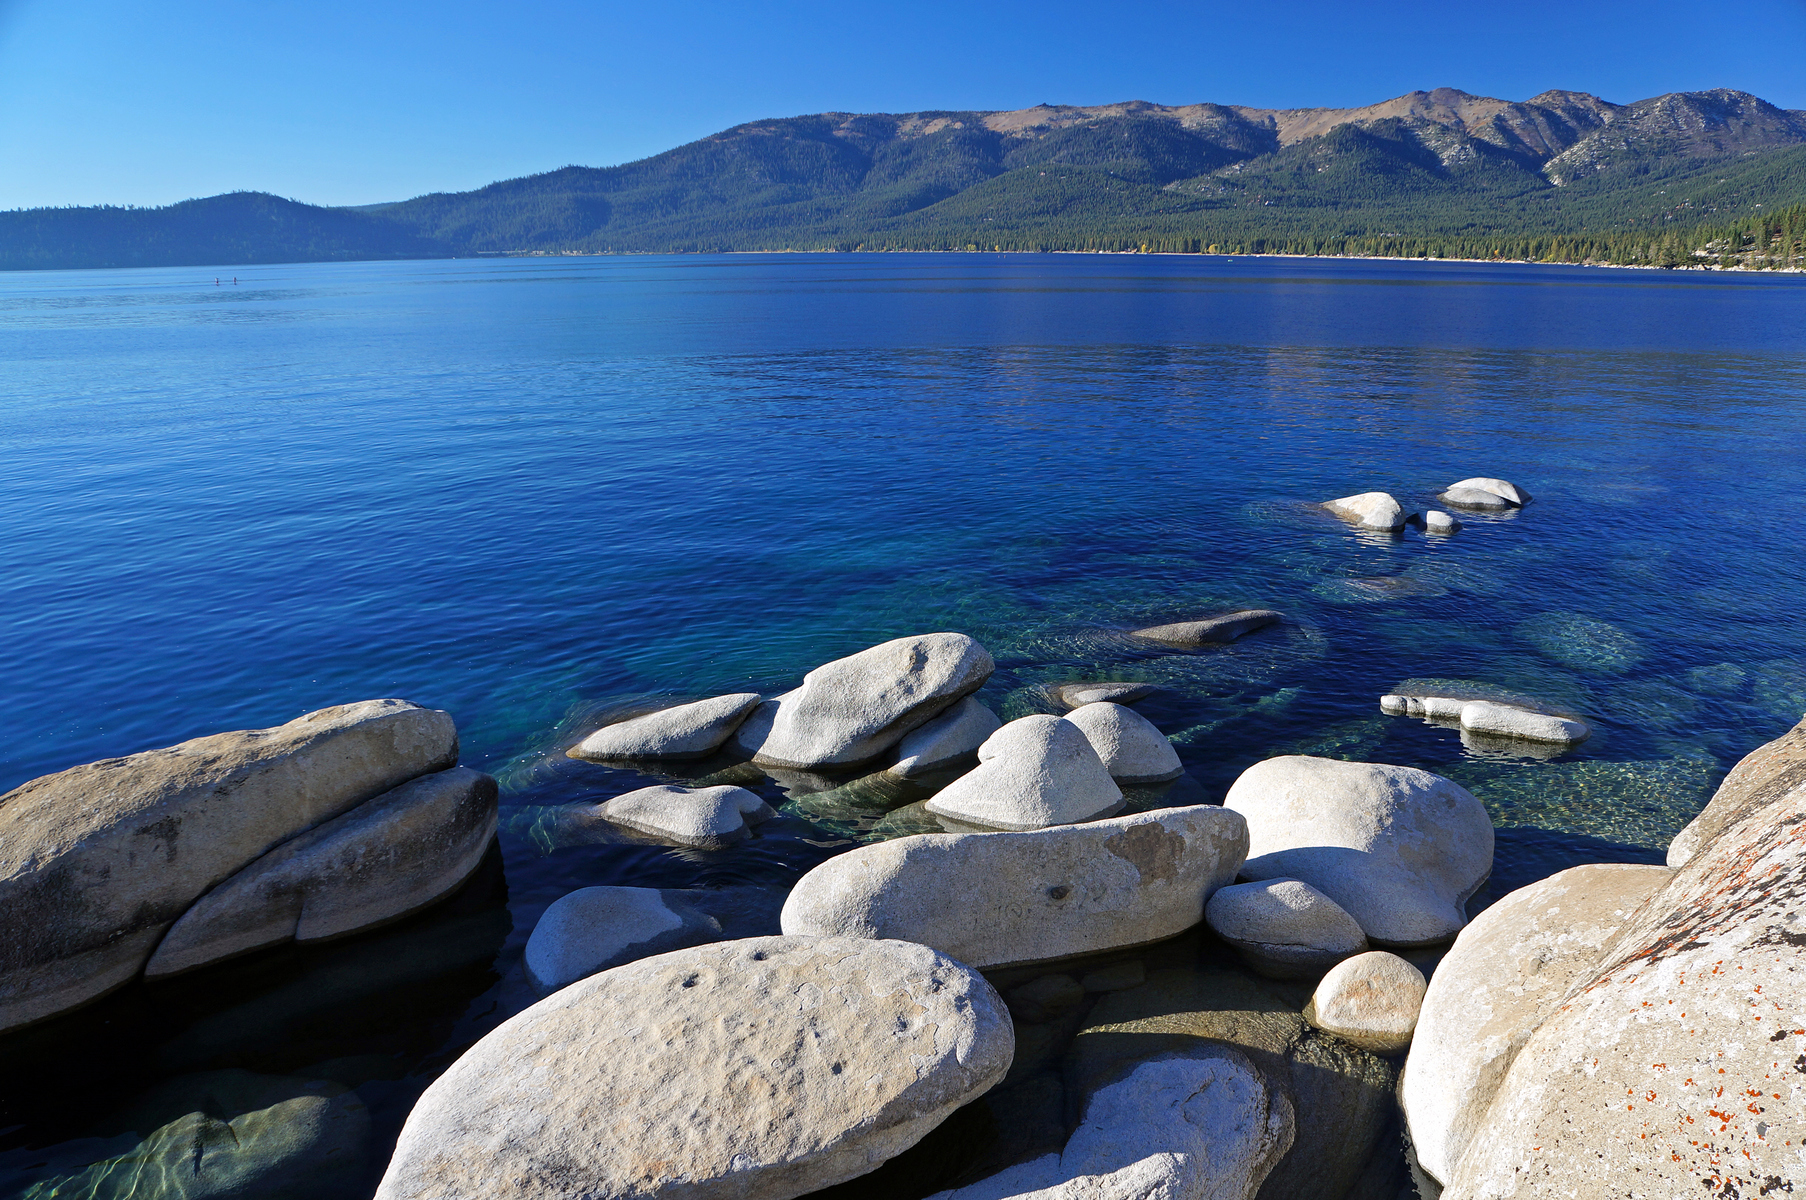 granite boulders along the short south of Incline Village, Nevada